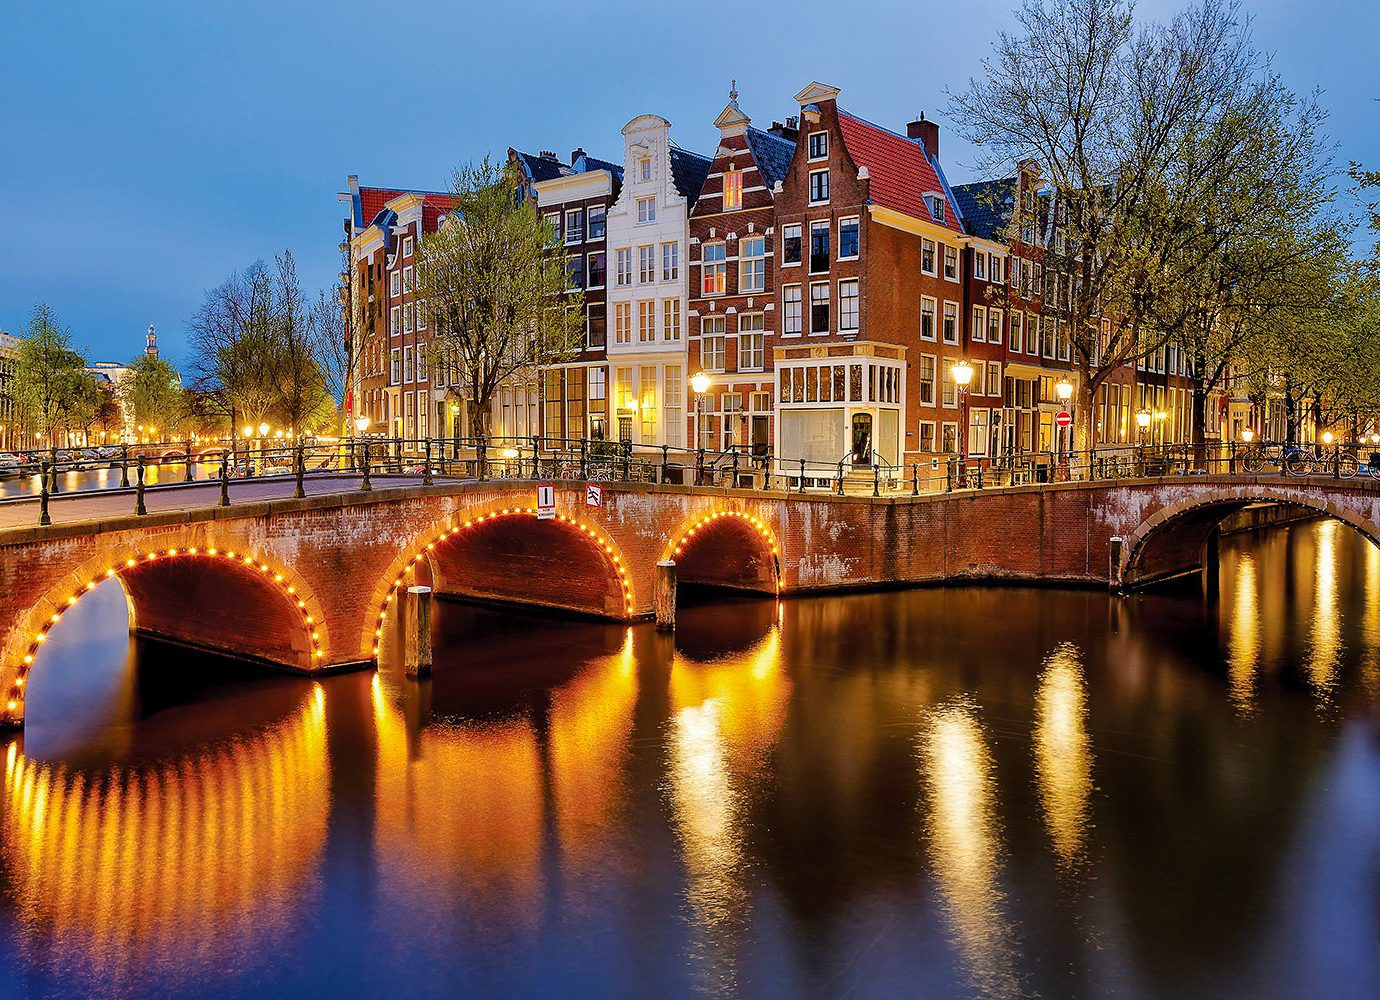 Cruise Travel Luxury Travel sky water outdoor reflection waterway Canal body of water landmark City bridge Town night evening River tree cityscape plant bank tourist attraction watercourse channel metropolis traveling arch several